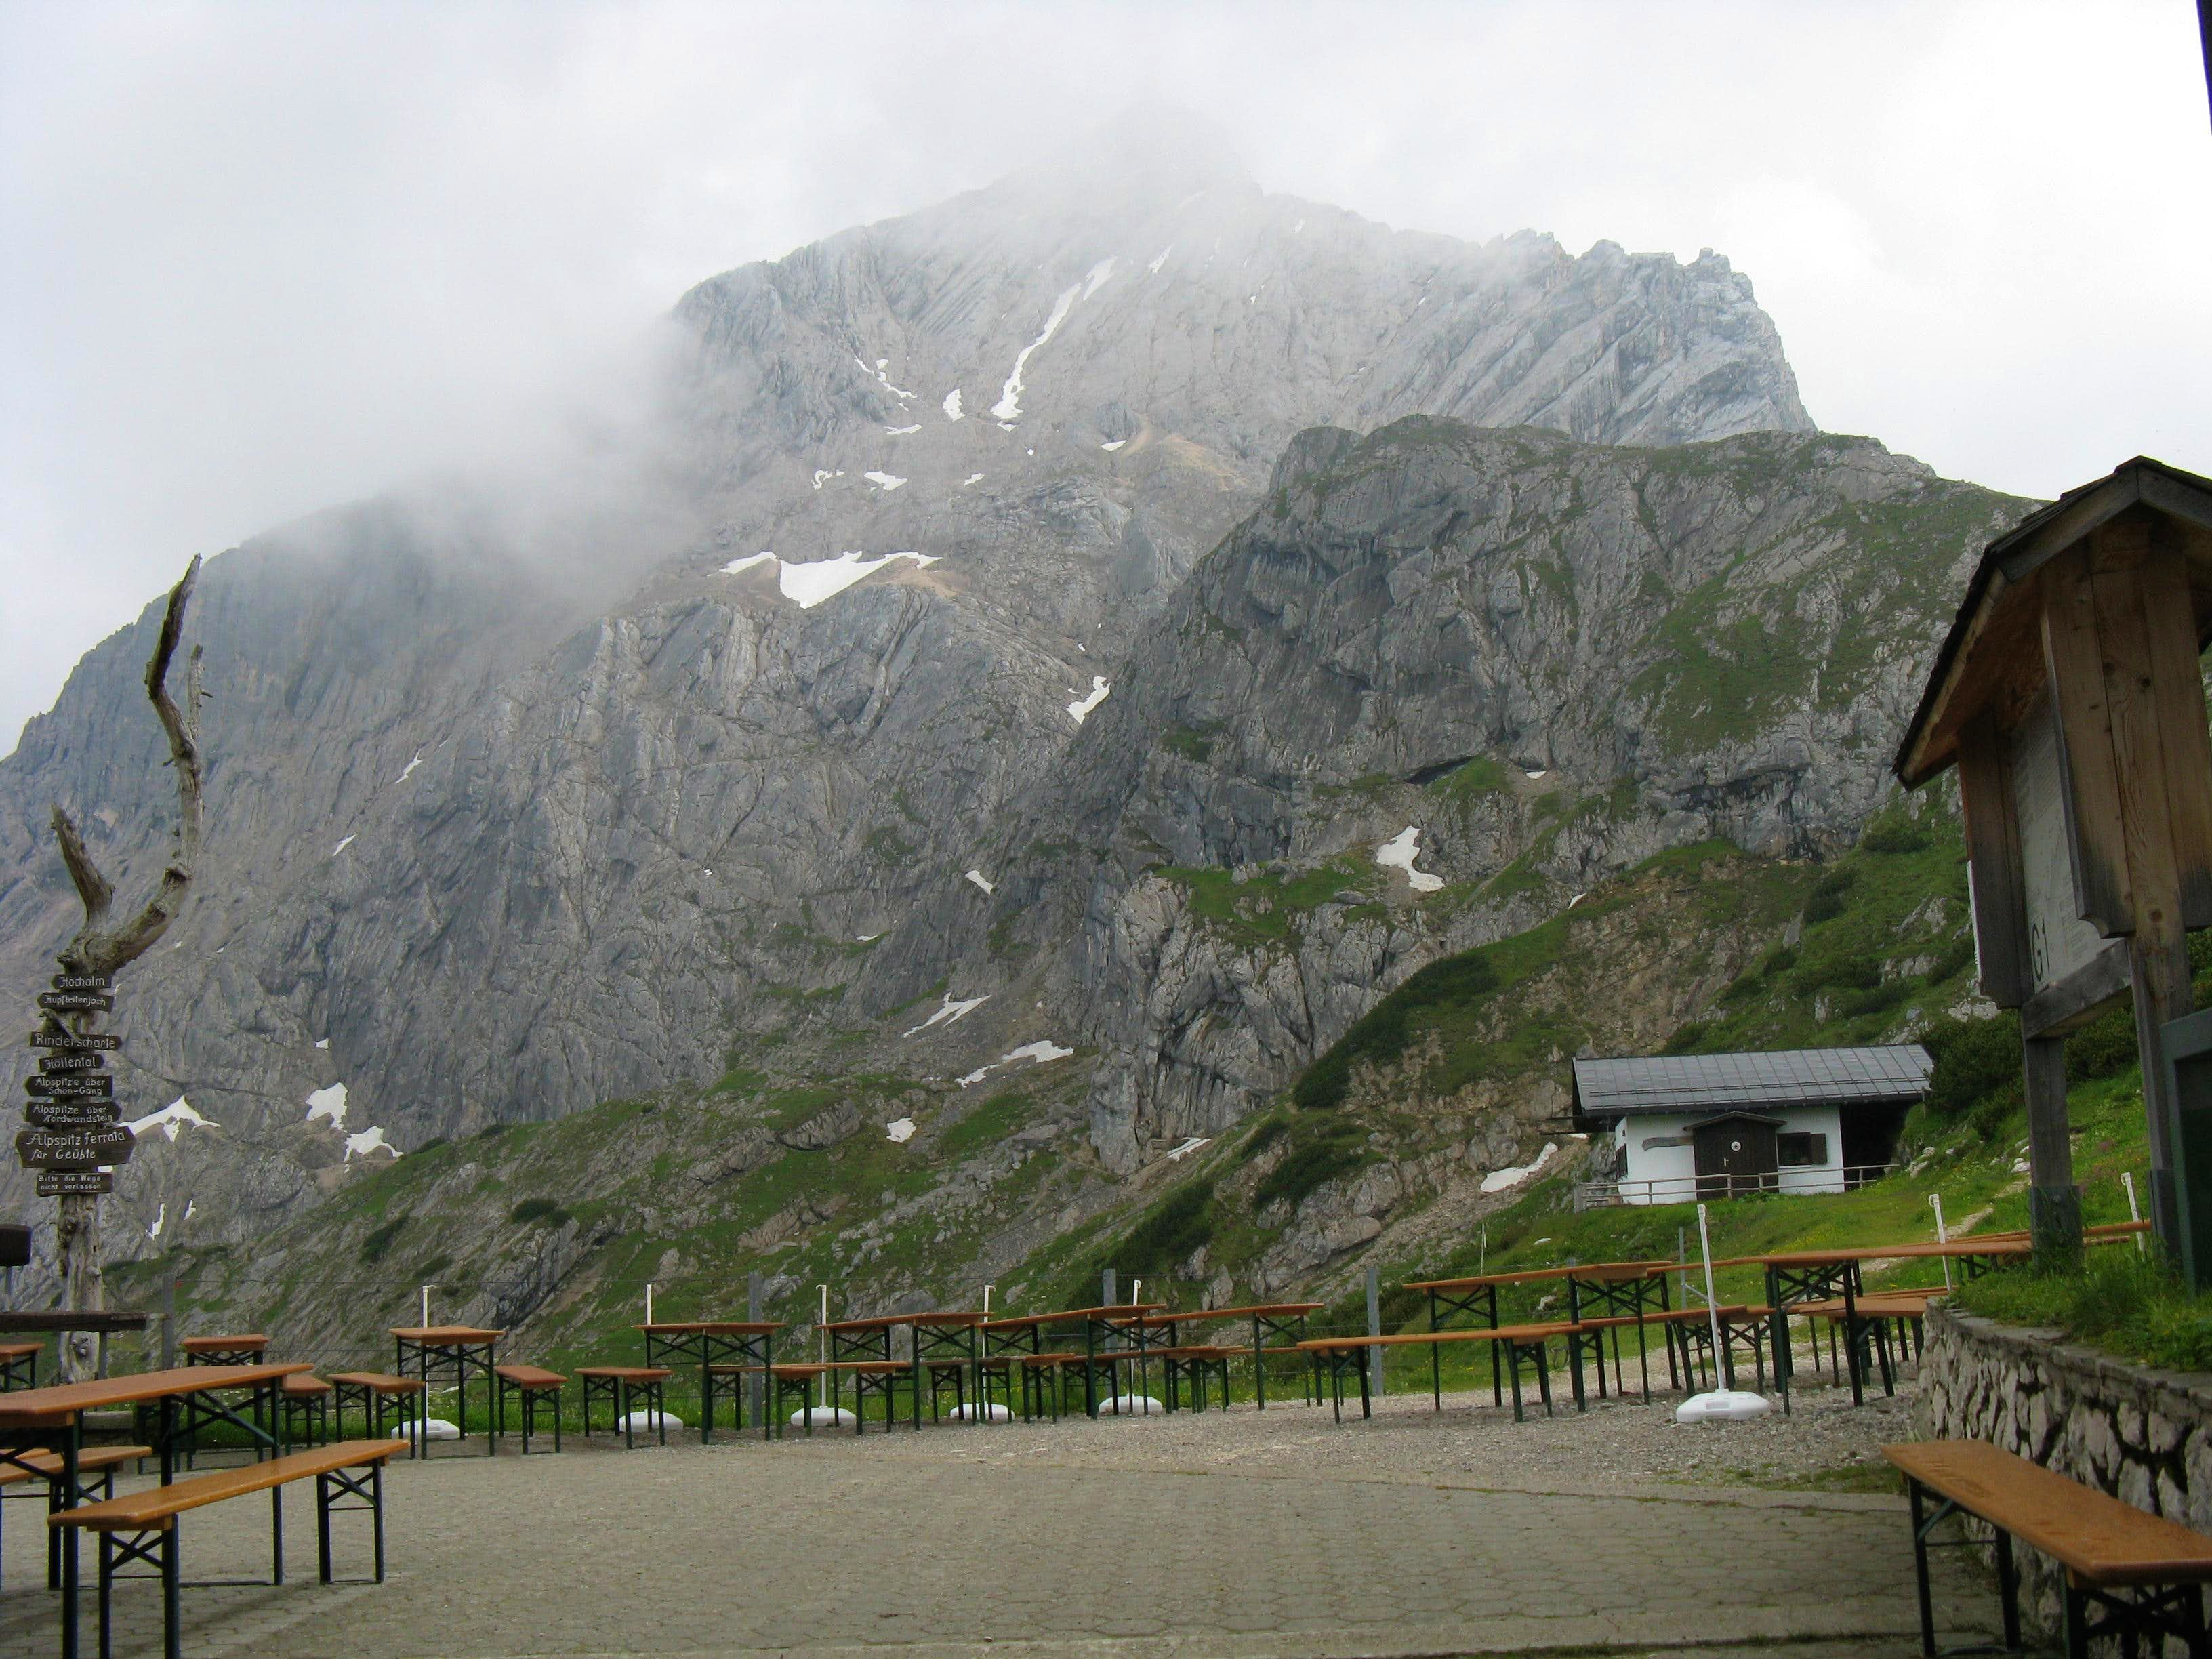 From Bahnhof to Summit